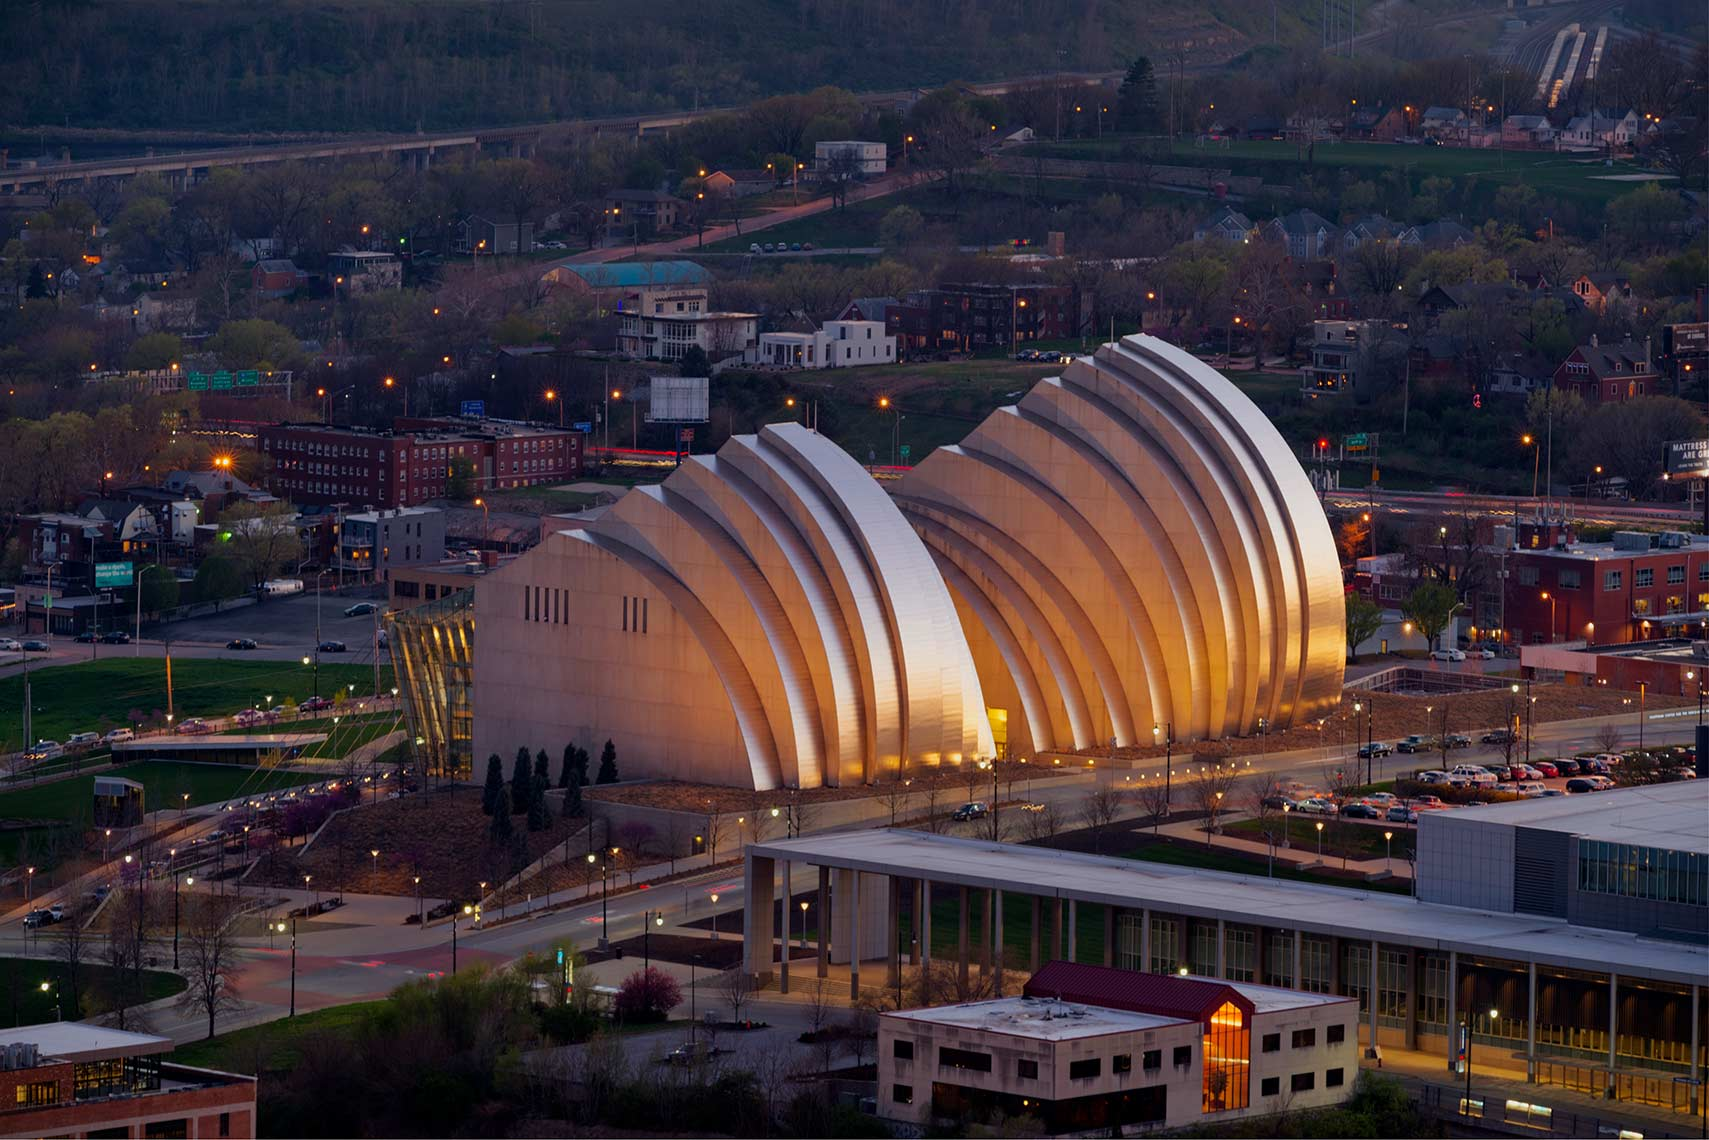 Kauffman-Center-Performing-Arts-East-side